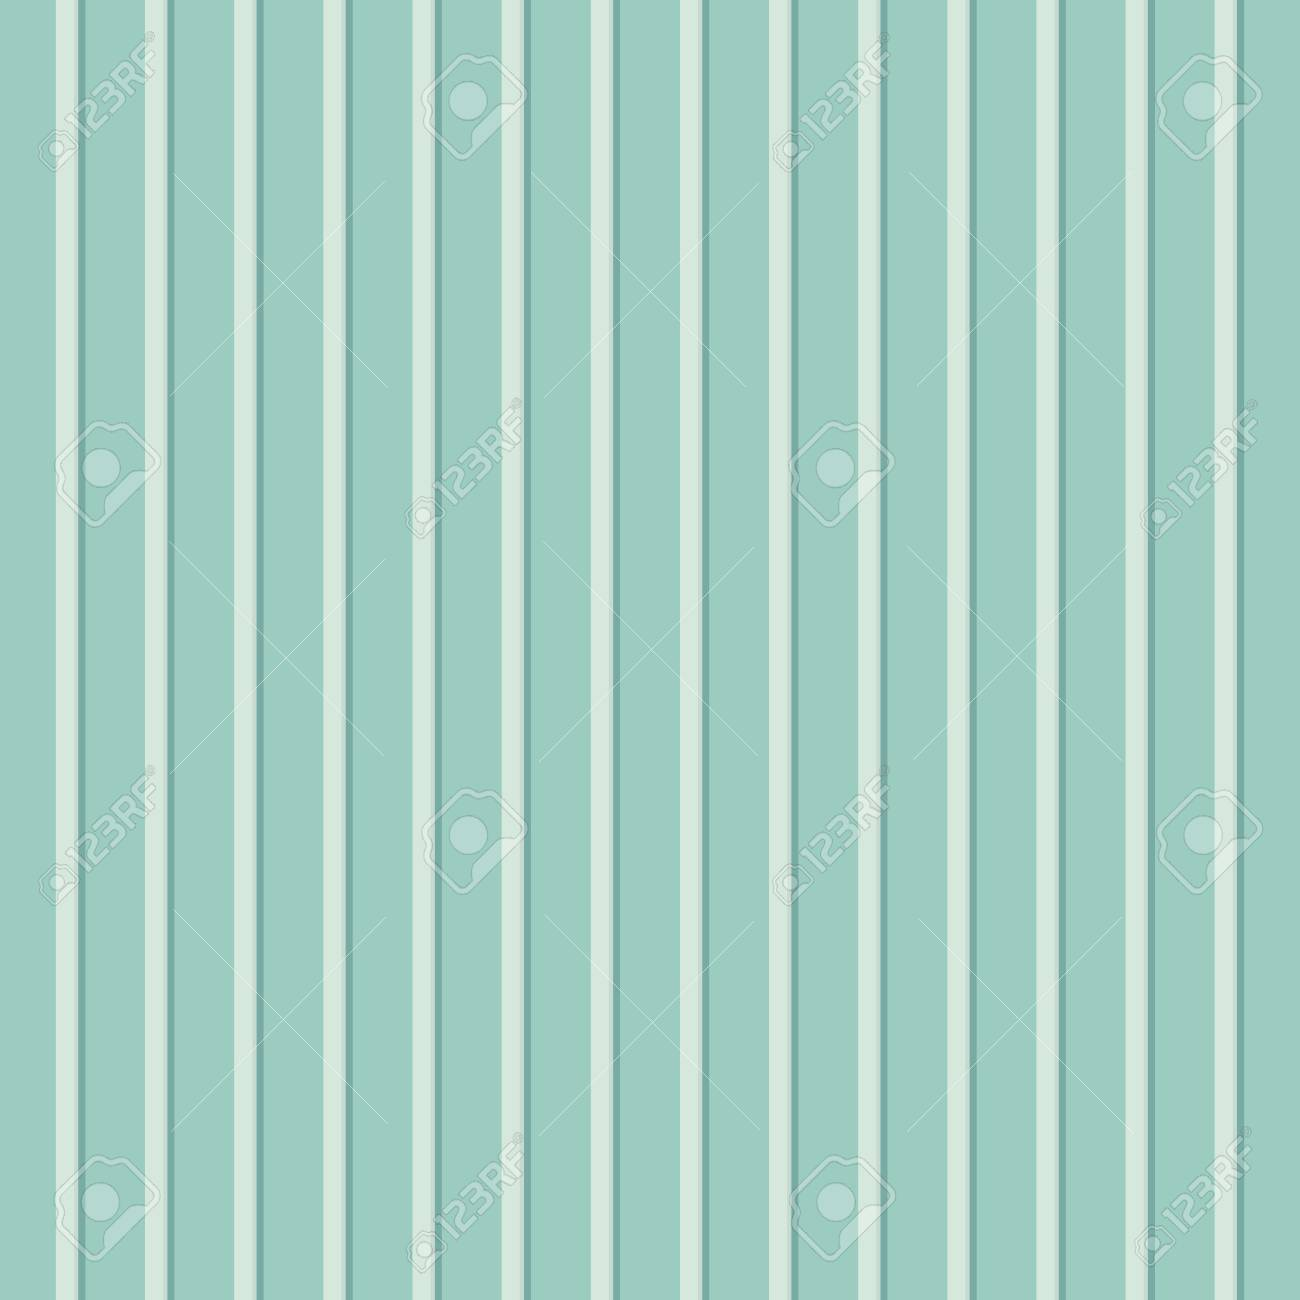 Vintage Background In Shabby Chic Style As Striped Pattern Royalty